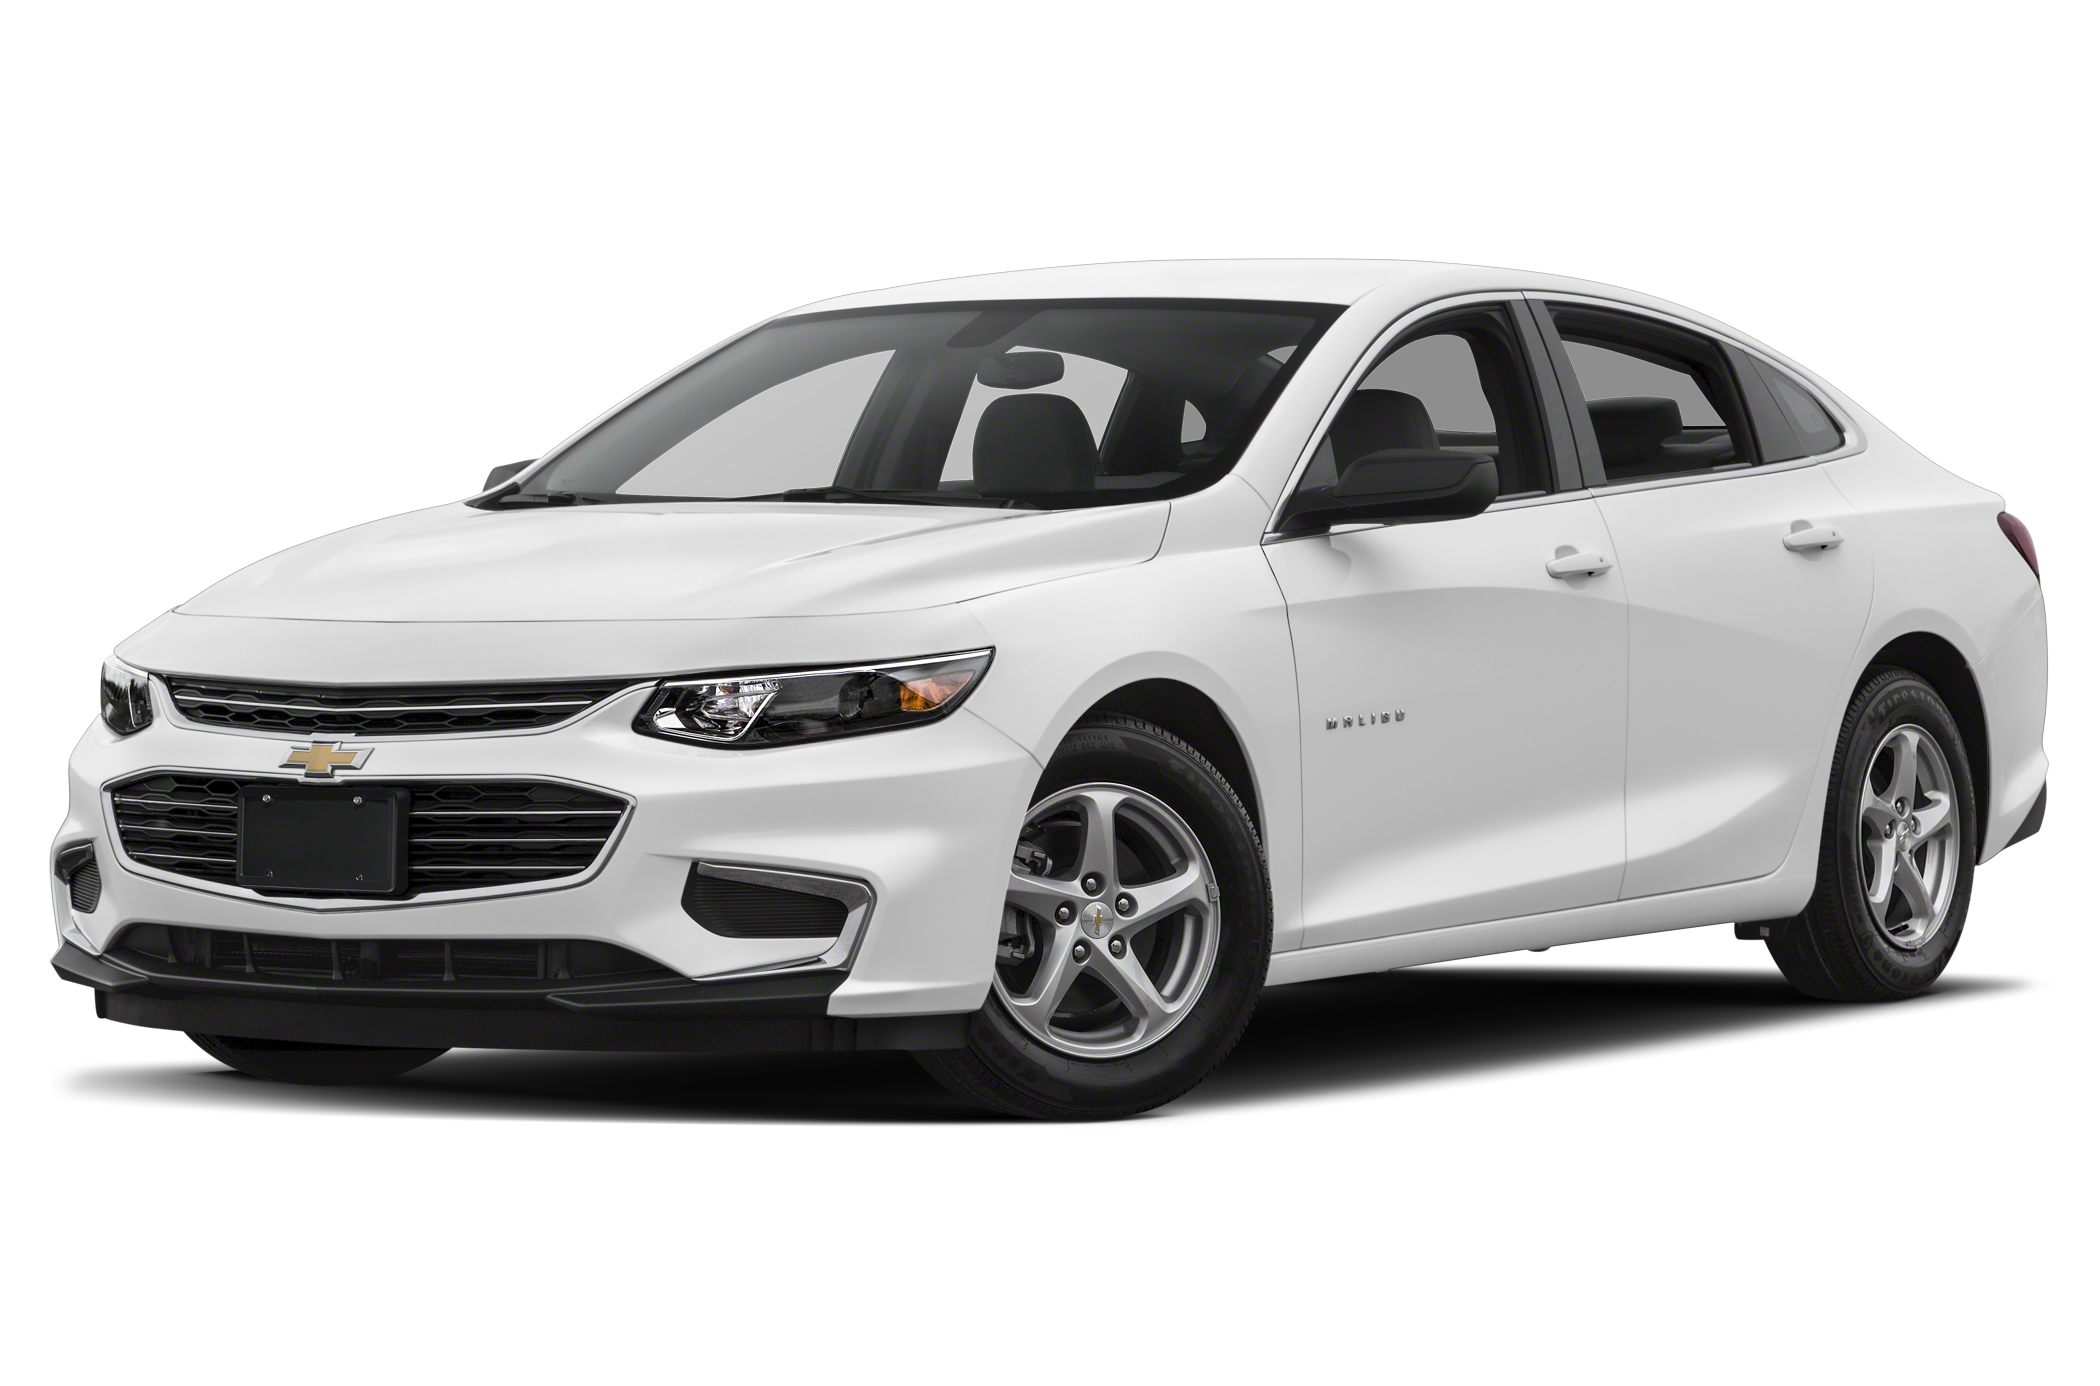 2017 chevrolet malibu 1ls for sale vin 1g1zb5st7hf